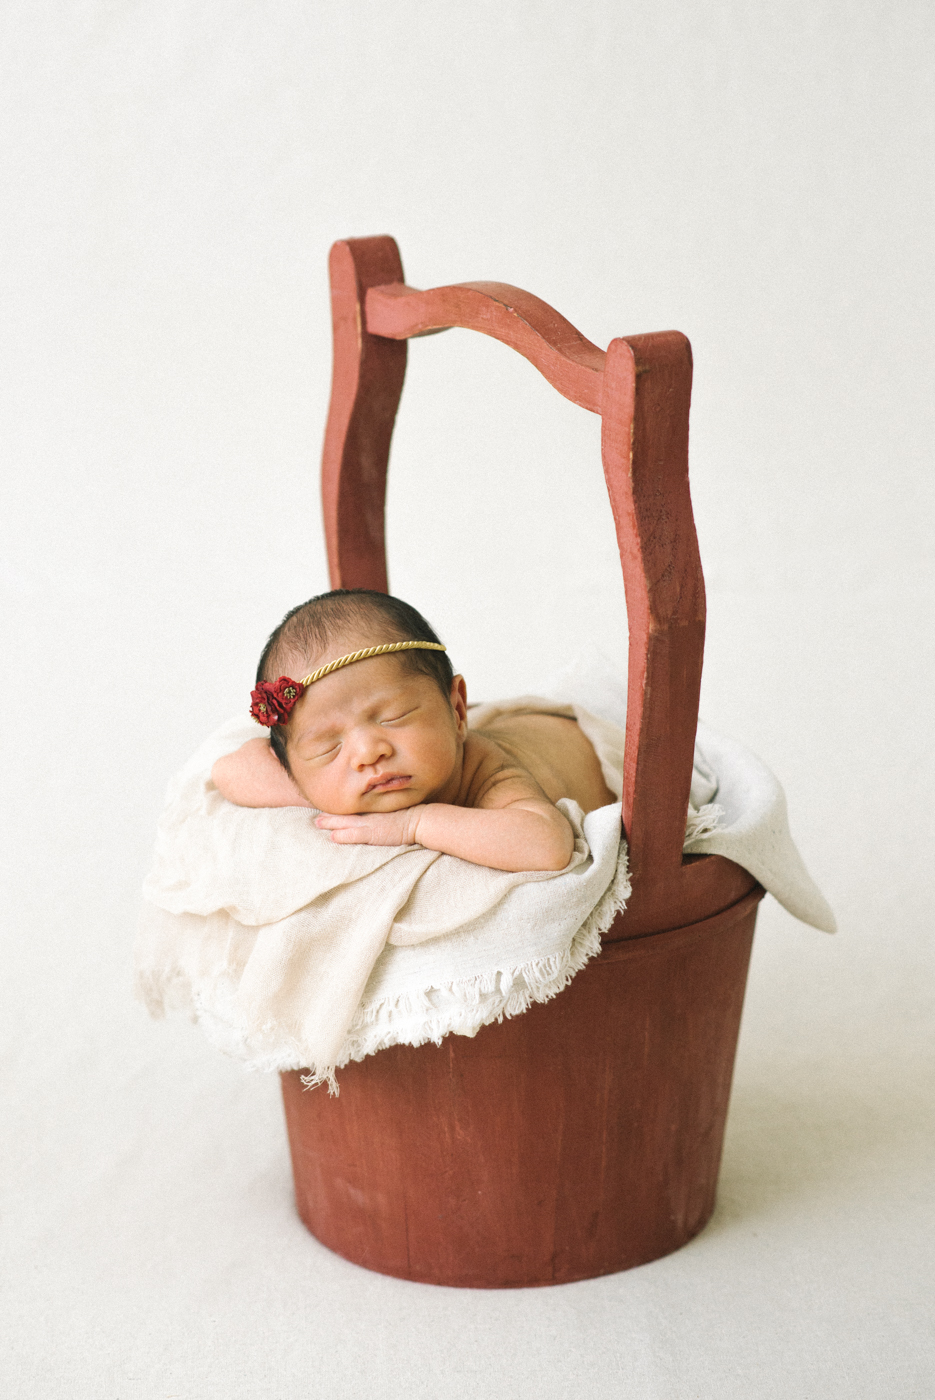 Newborn-Photographer-Portland-Oregon-Baby-Portrait-Natural-Light-red-basket-gold-headband-Shelley-Marie-Photography-4